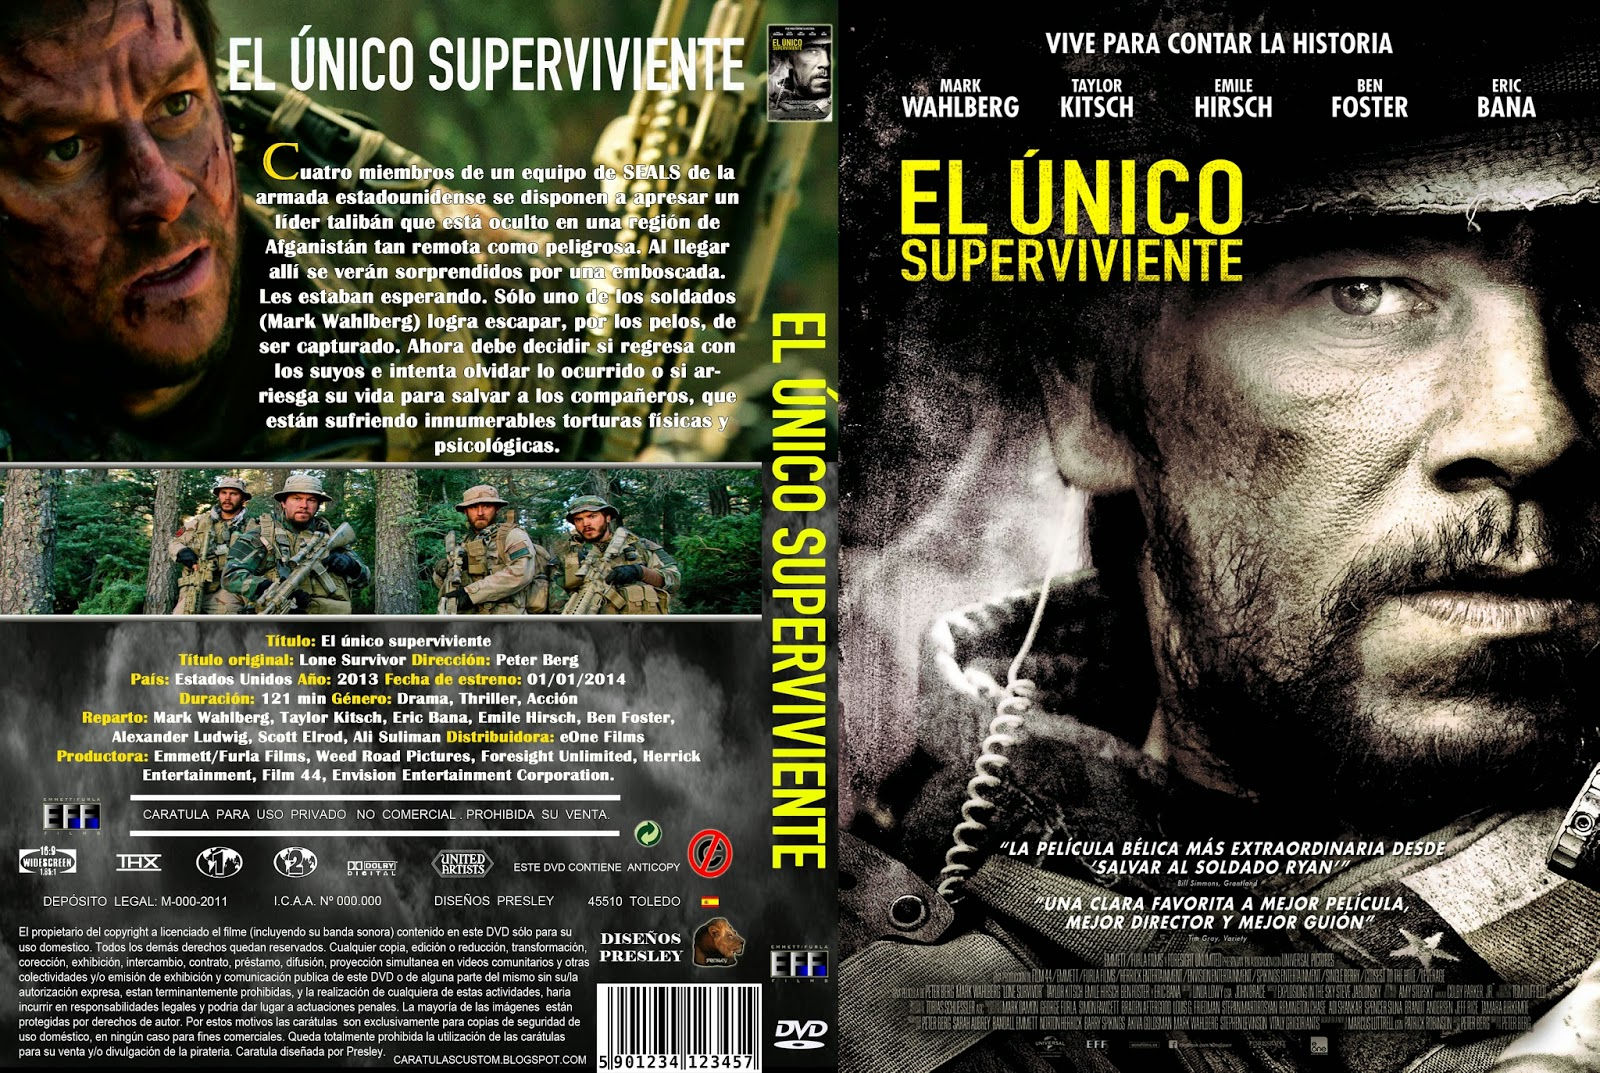 El nico superviviente full 1080p hd mkv espa ol latino for El mural pelicula descargar